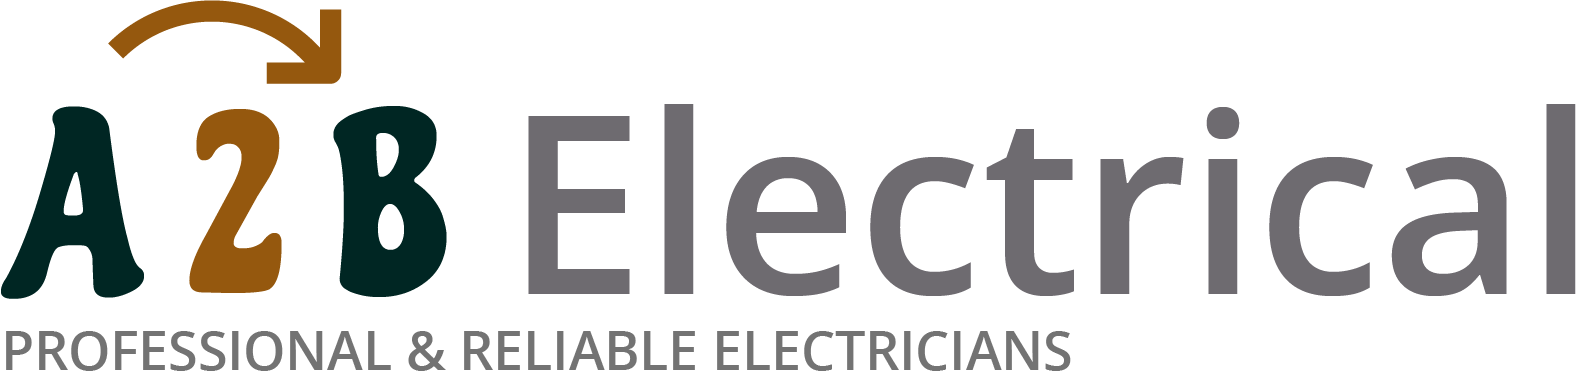 If you have electrical wiring problems in Eastcote, we can provide an electrician to have a look for you.